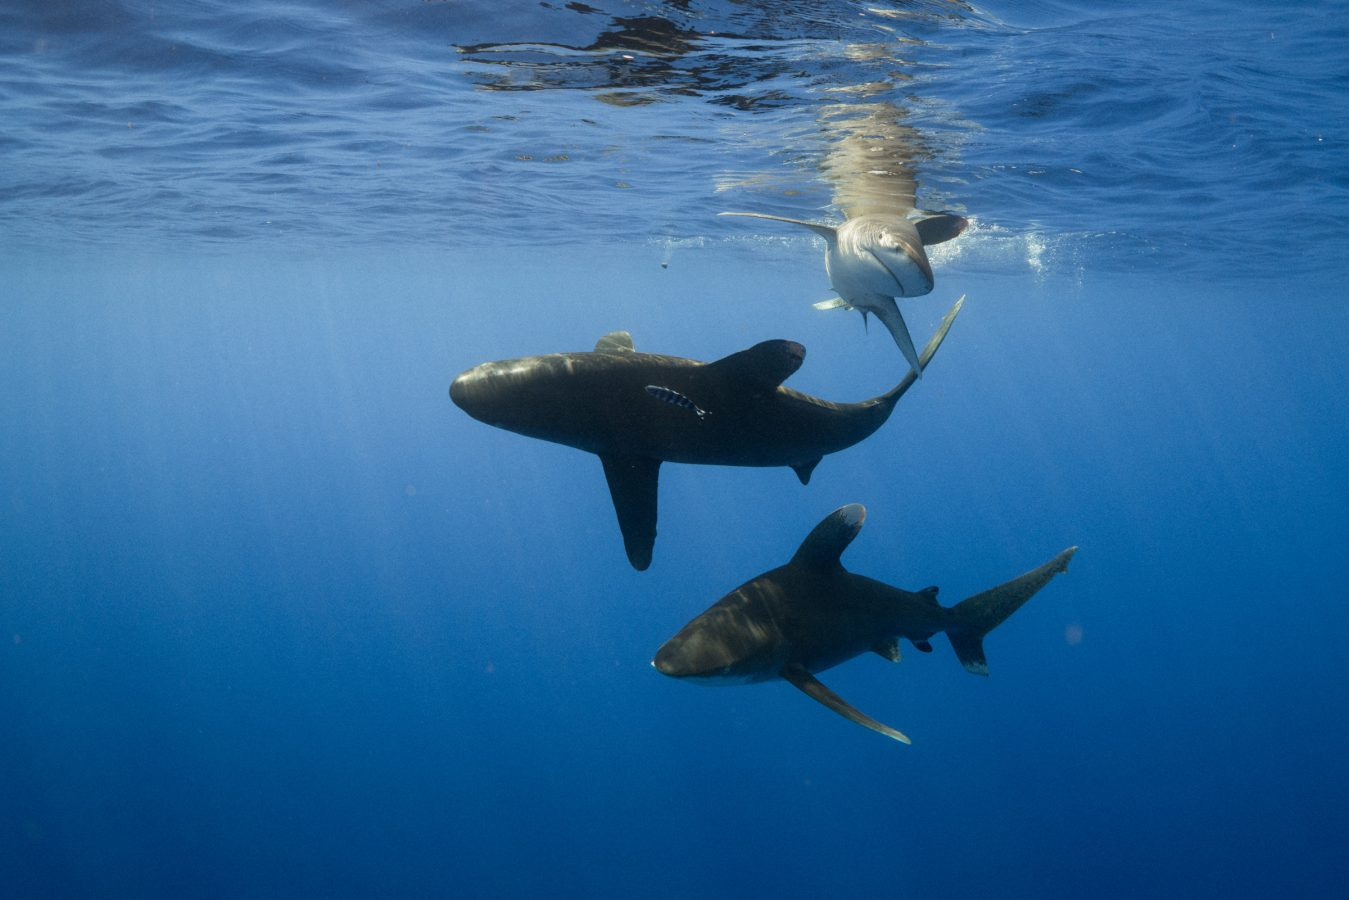 Three oceanic whitetip sharks off of Cat Island, The Bahamas.